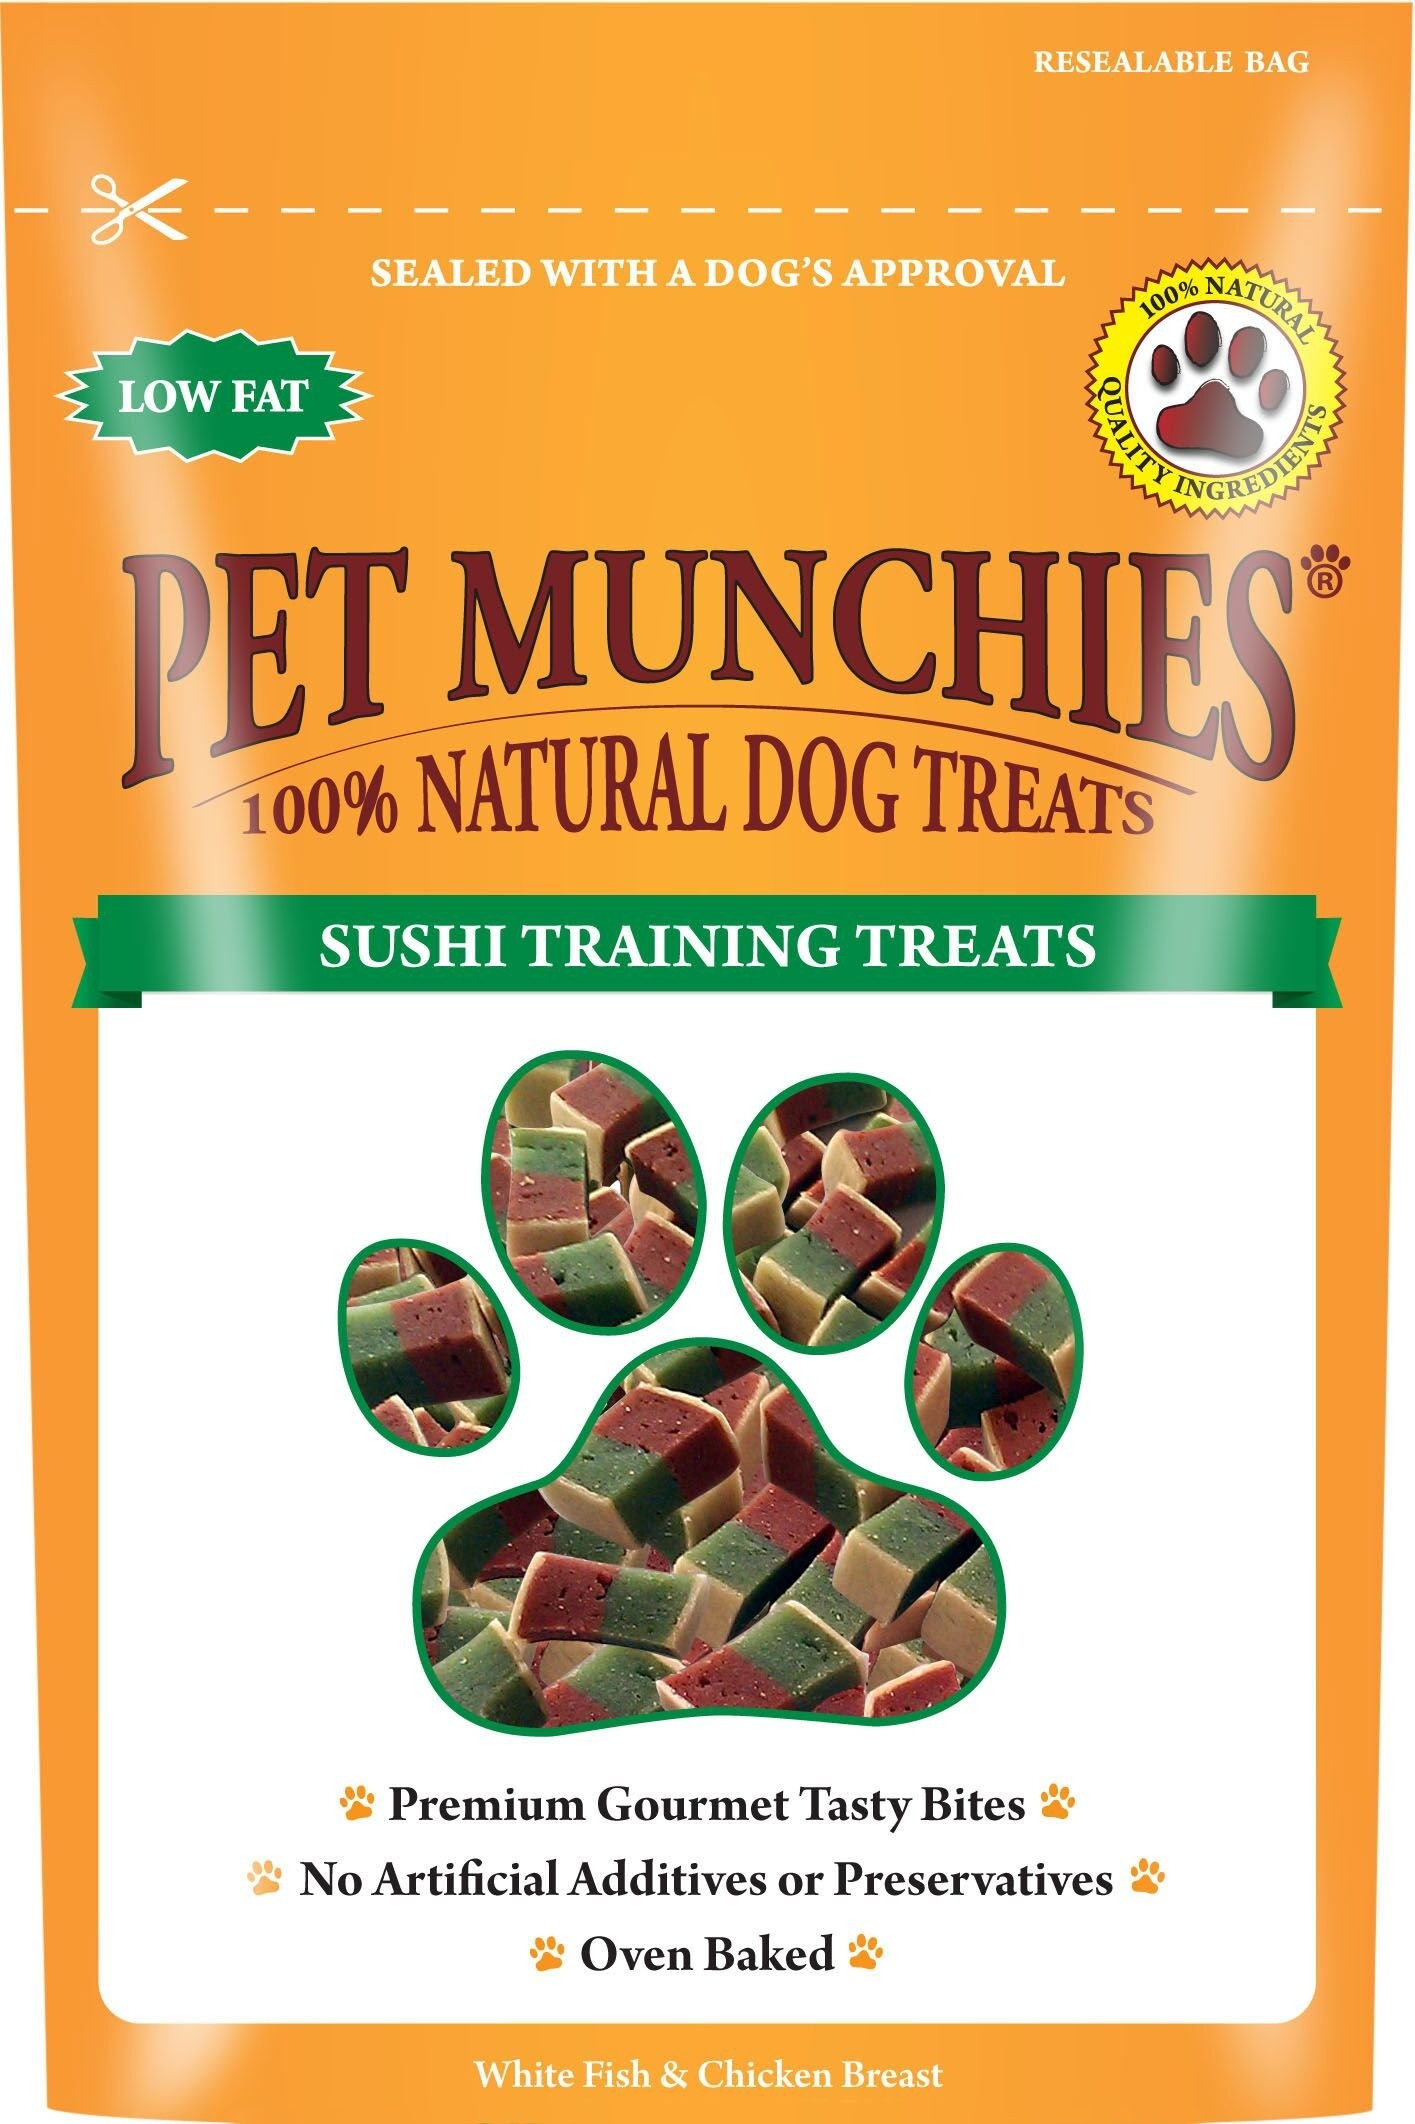 Pet Munchies Sushi Training Treats  - Thomas Irving's equestrian and accessories store  Pet Munchies Sushi Training Treats